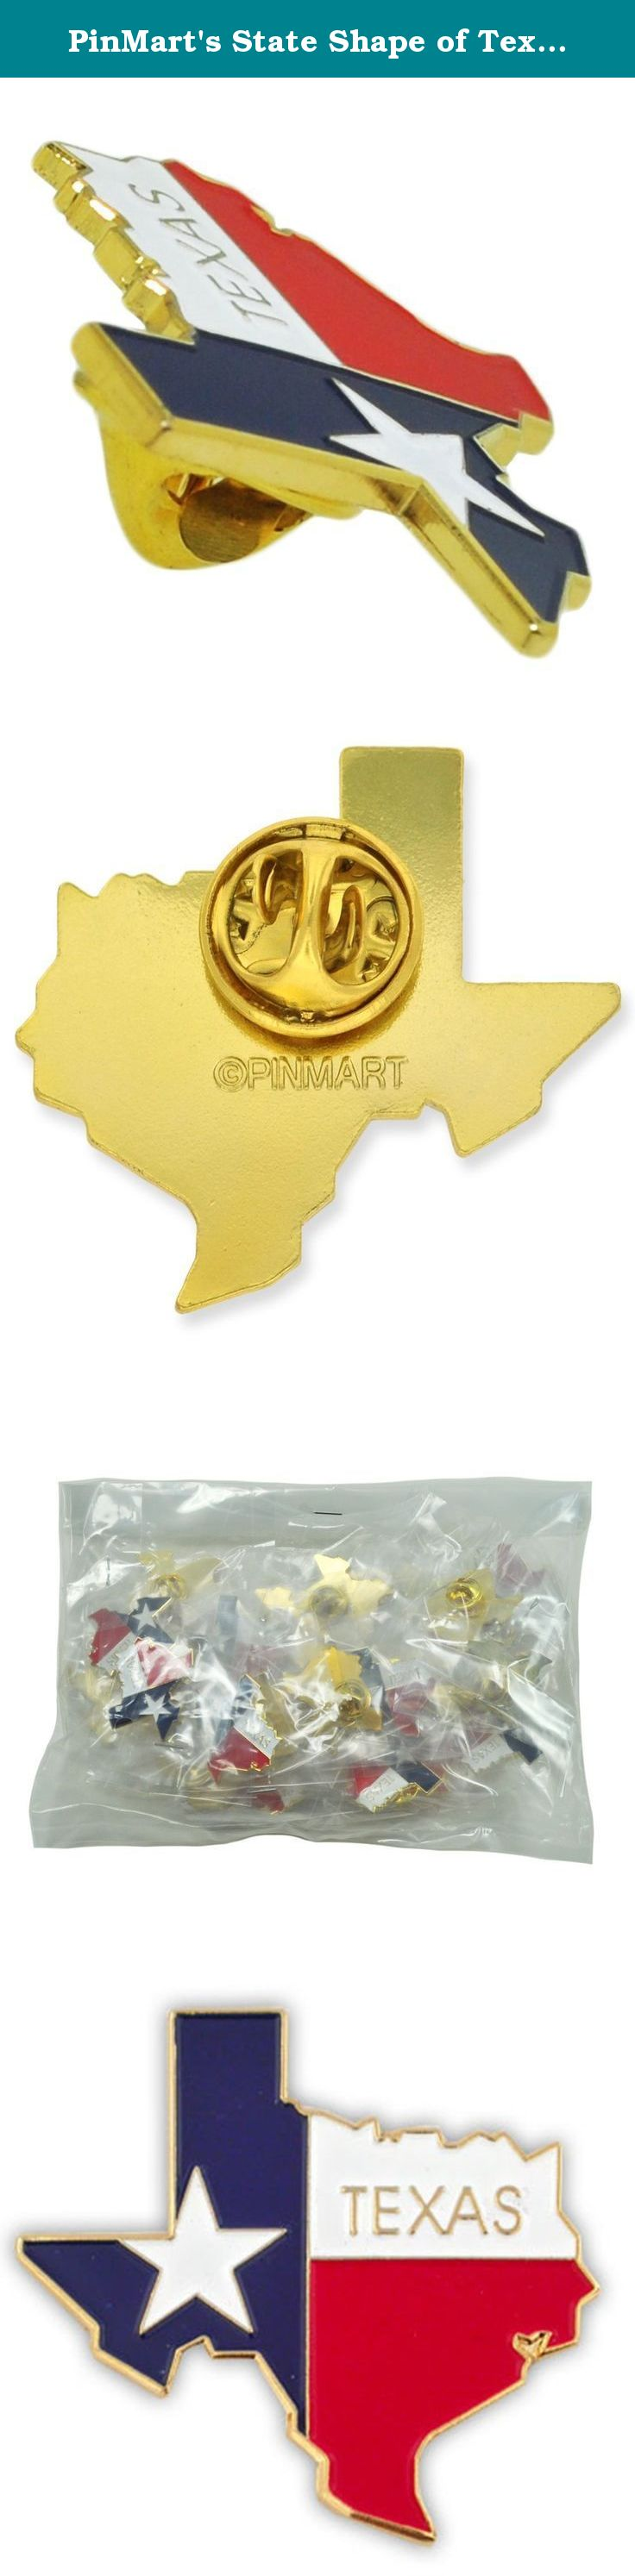 PinMartu0027s State Shape Of Texas And Texas Flag Lapel Pin. This Beautifully  Designed Lapel Pin